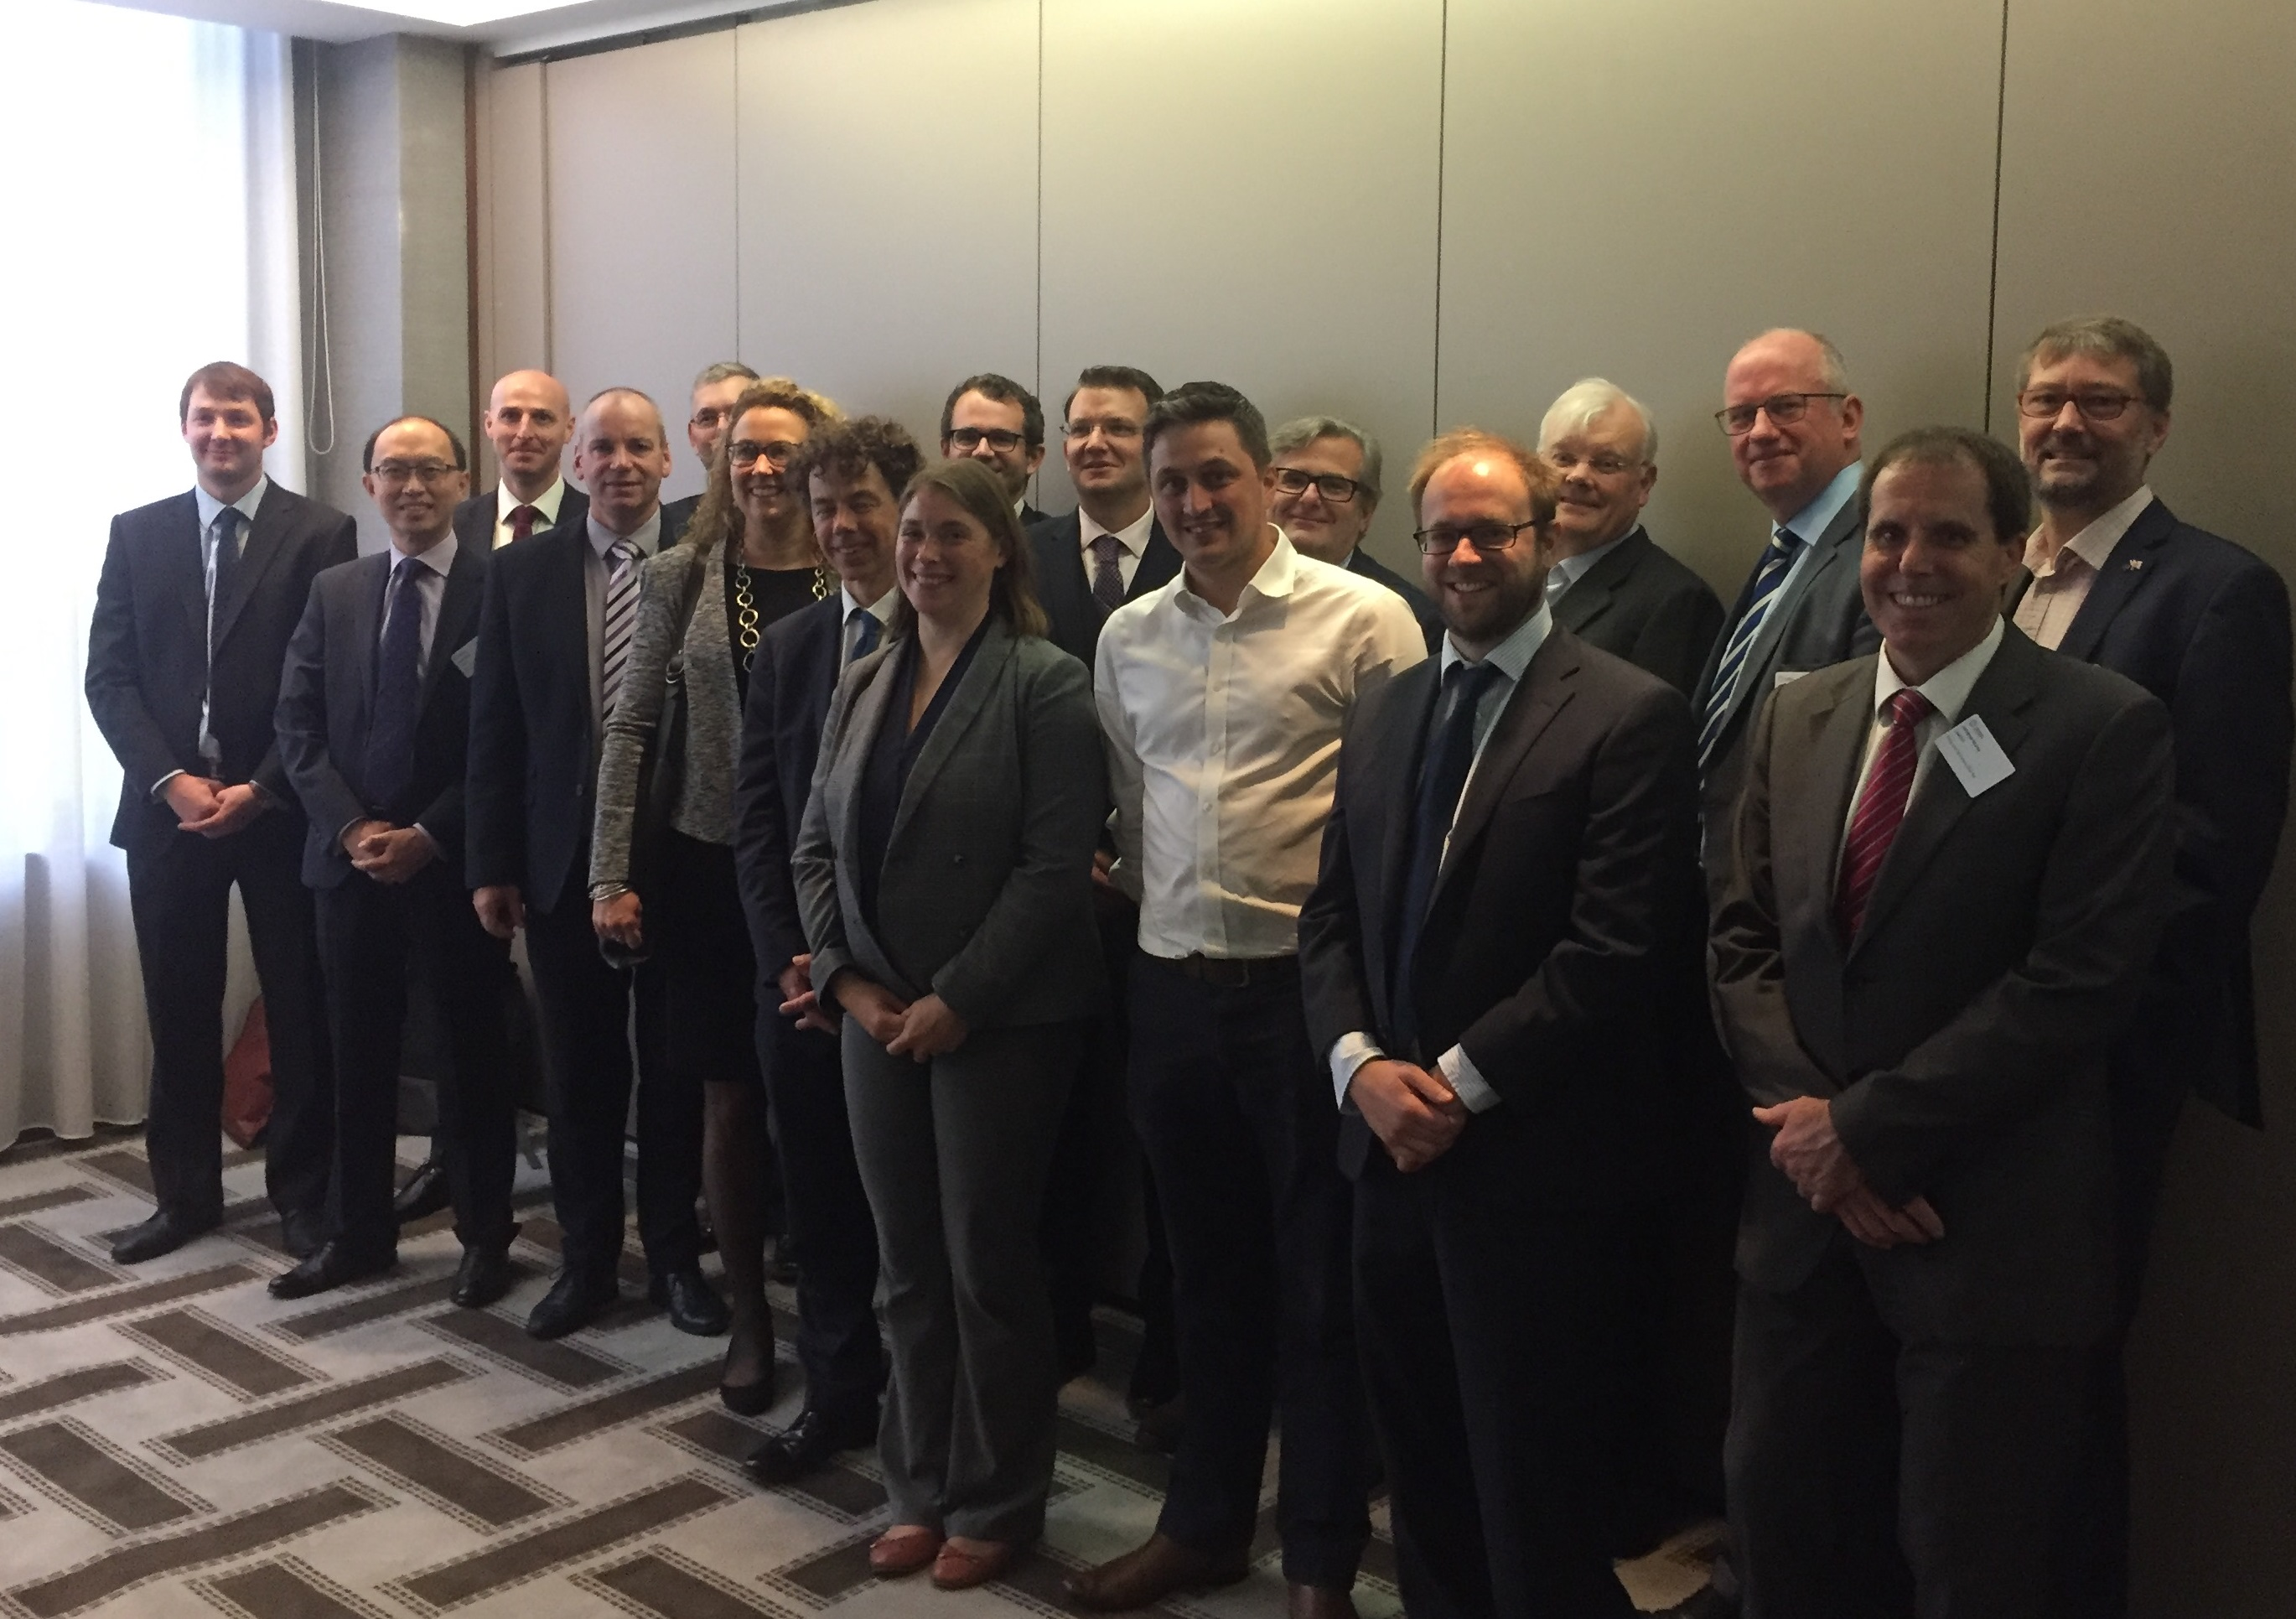 The Steering Group at the public launch meeting, ZEV Summit, Birmingham 11th Sept 2018